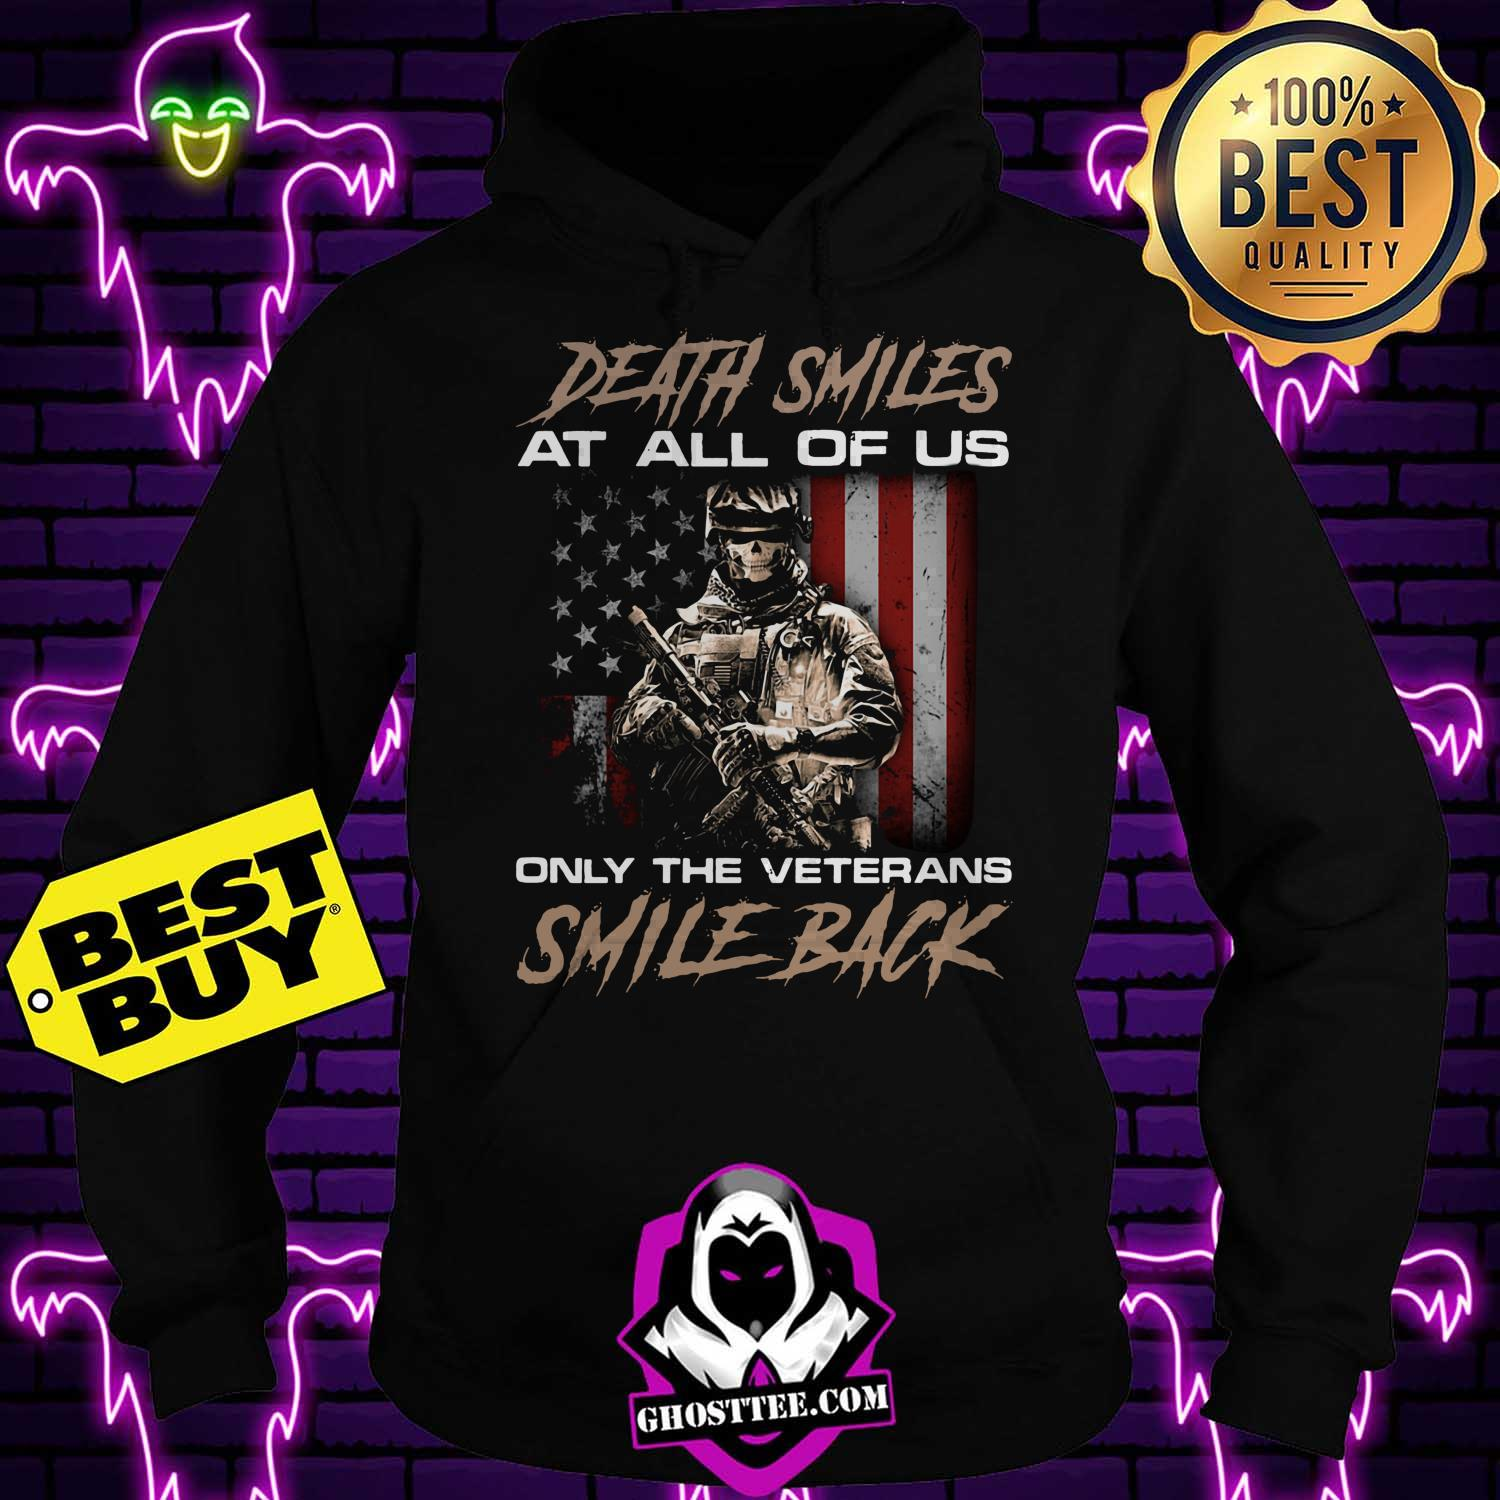 death smiles at all of us only the veterans smile back america flag hoodie - Death smiles at all of us only the veterans smile back America Flag shirt